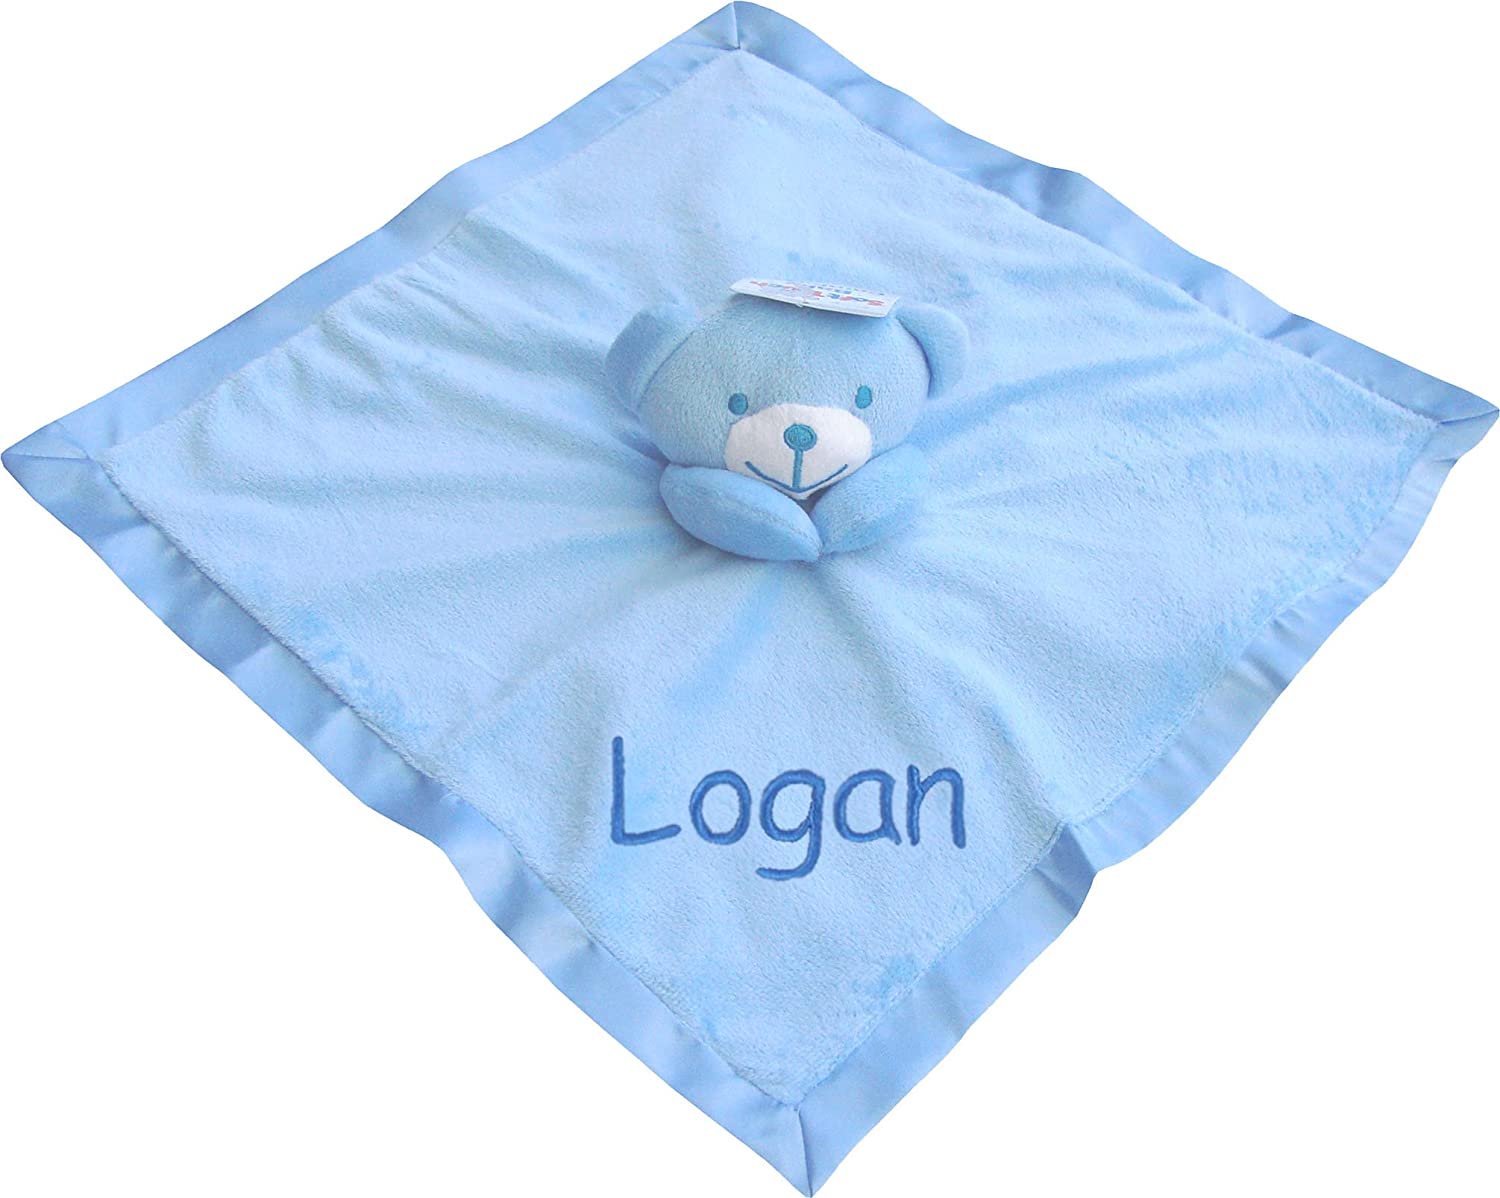 Baby Super Soft Personalised Name /& Date Comforter Blanket with 3D Teddy Bear White /& Neutral